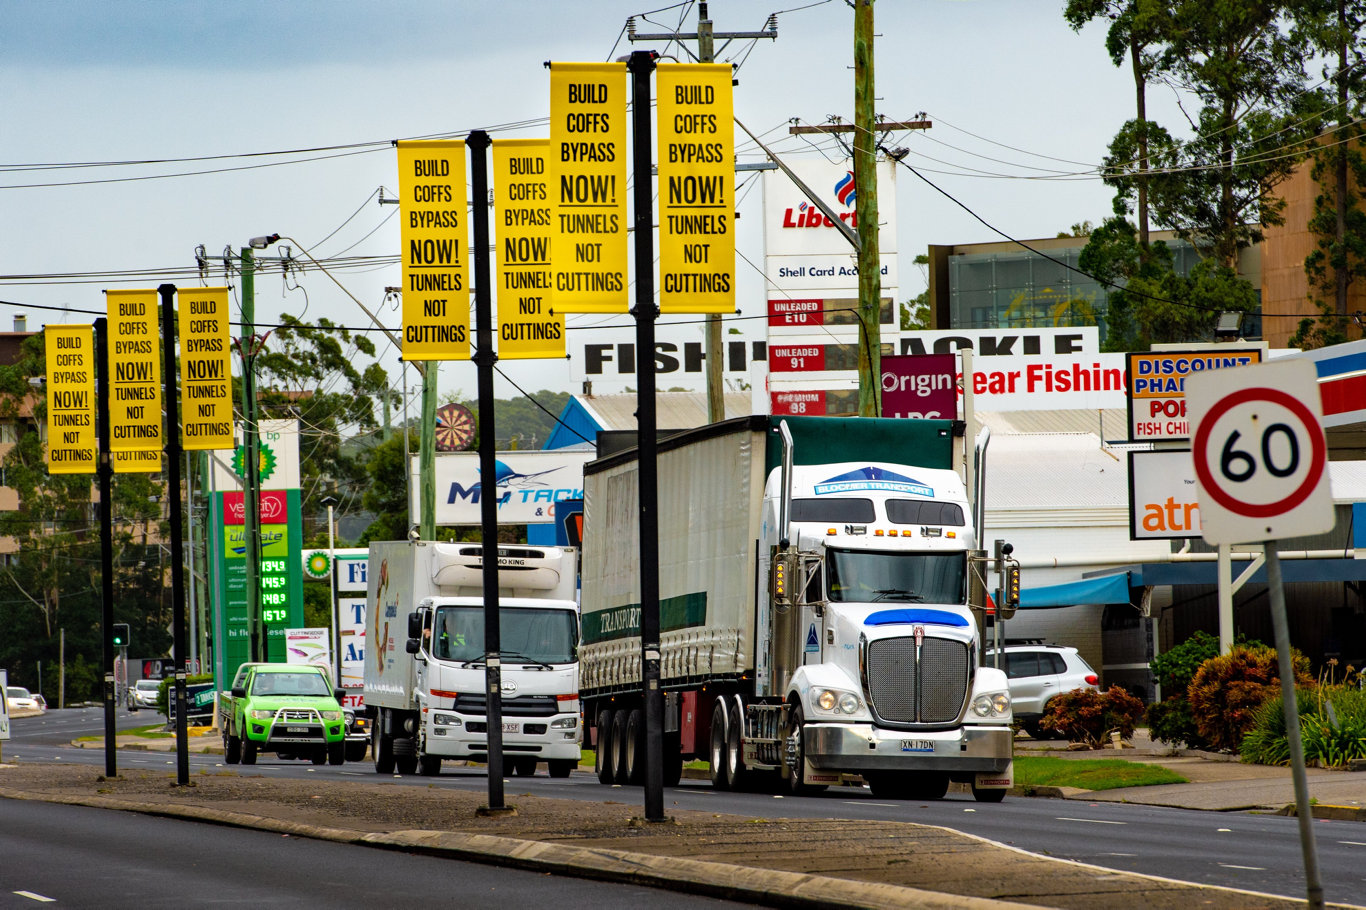 Coffs Harbour City Council today has its bypass banners up around the city.